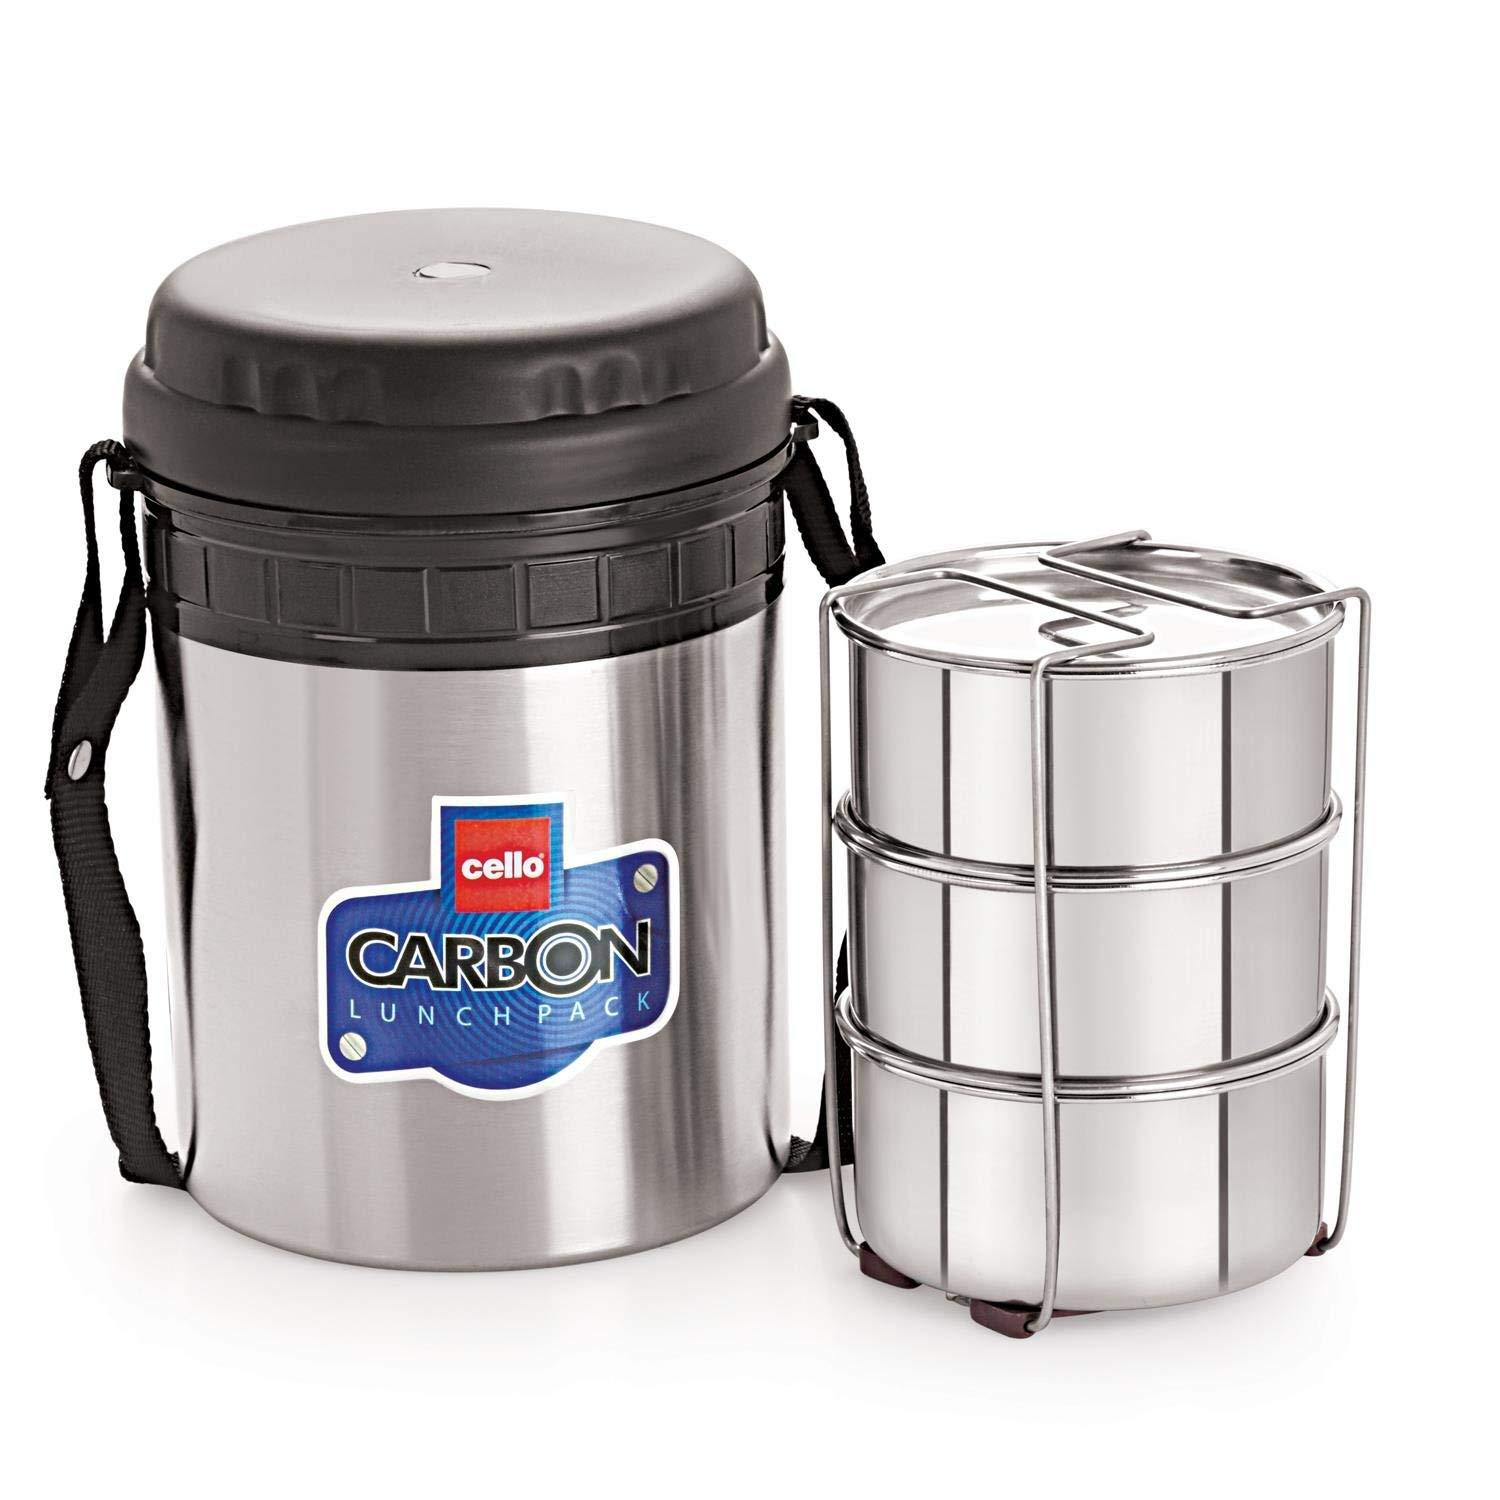 CELLO CARBON 3 LUNCH BOX